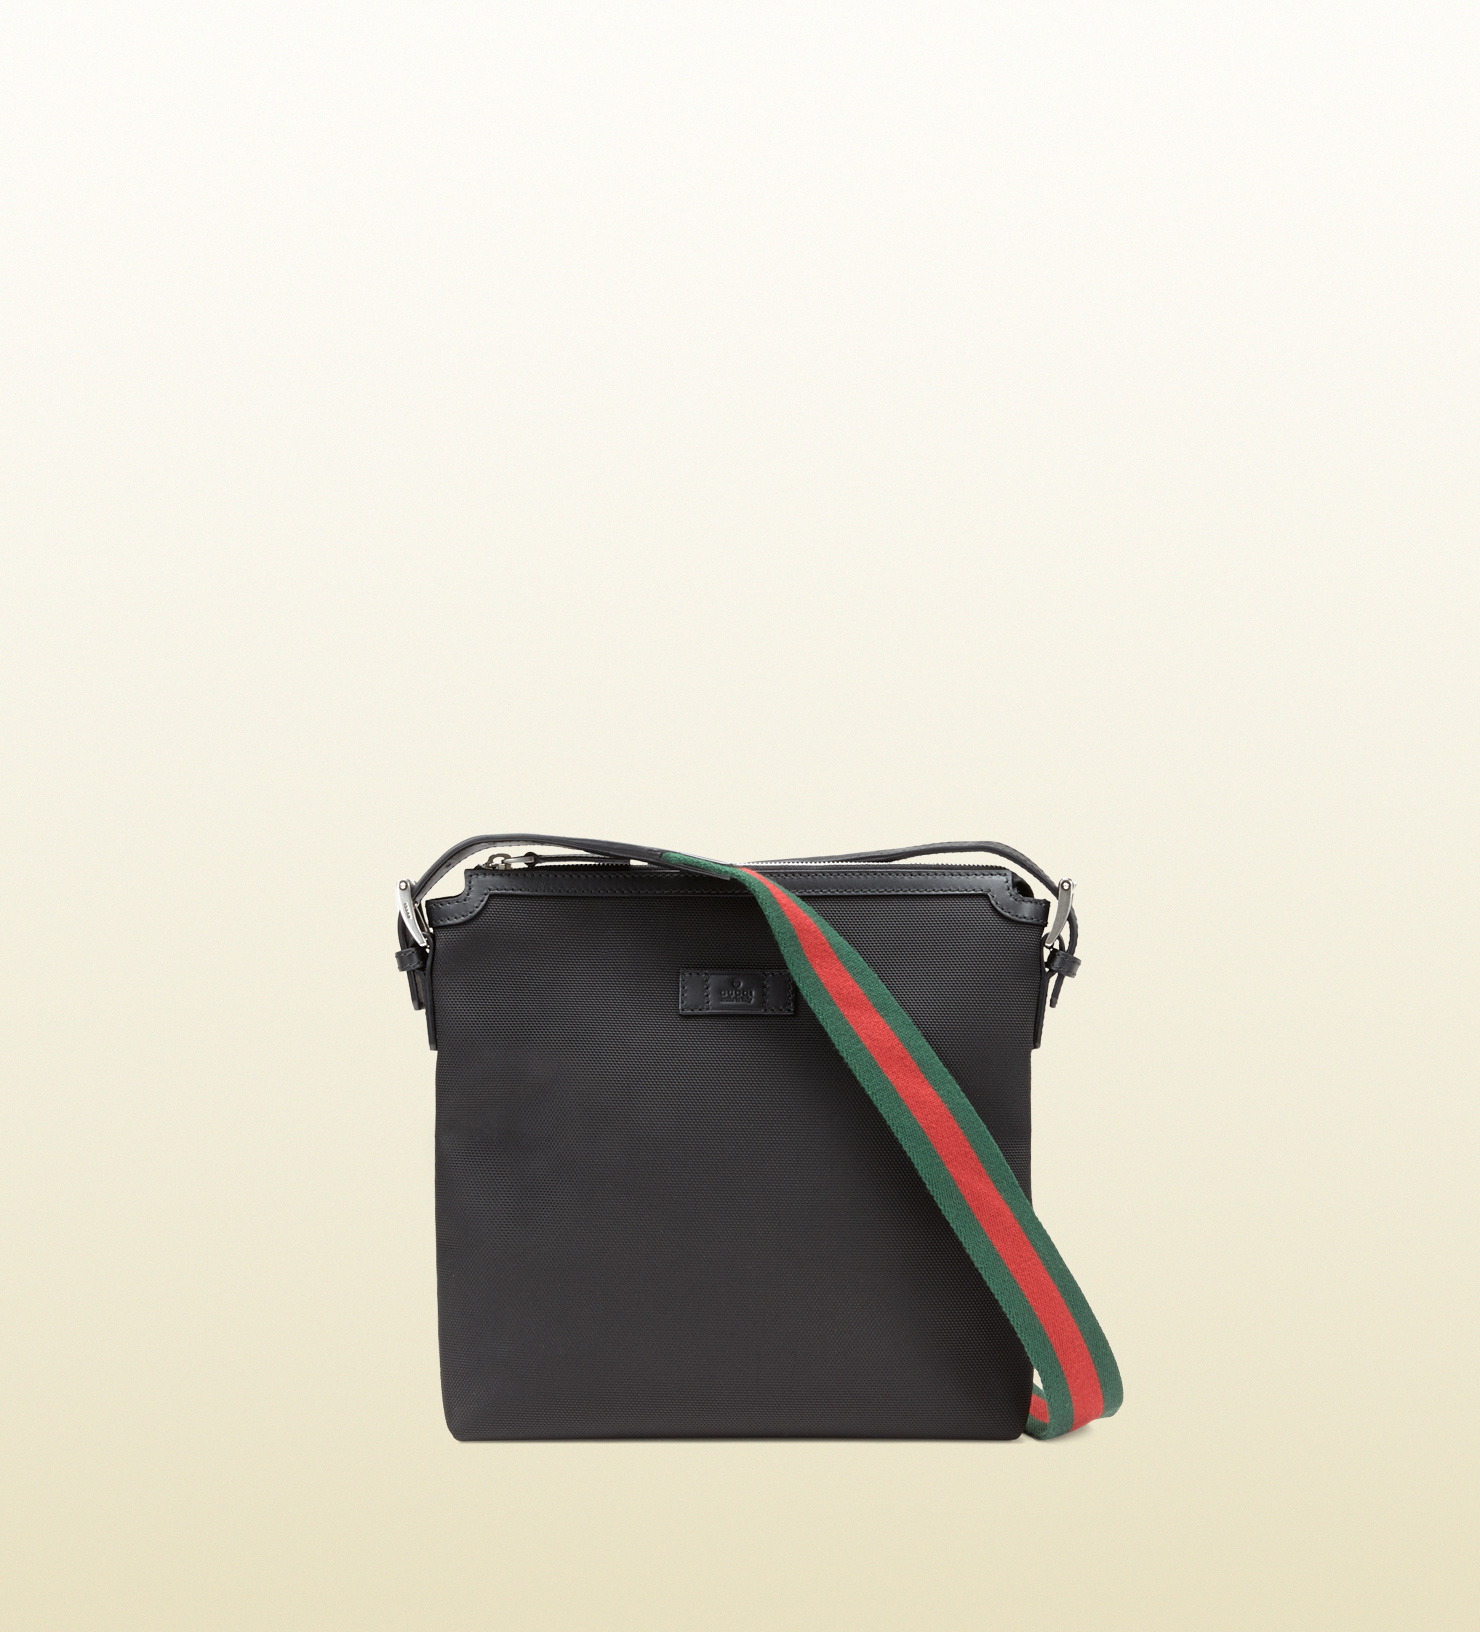 f04b7184c Gucci Techno Canvas Messenger Bag in Black for Men - Lyst